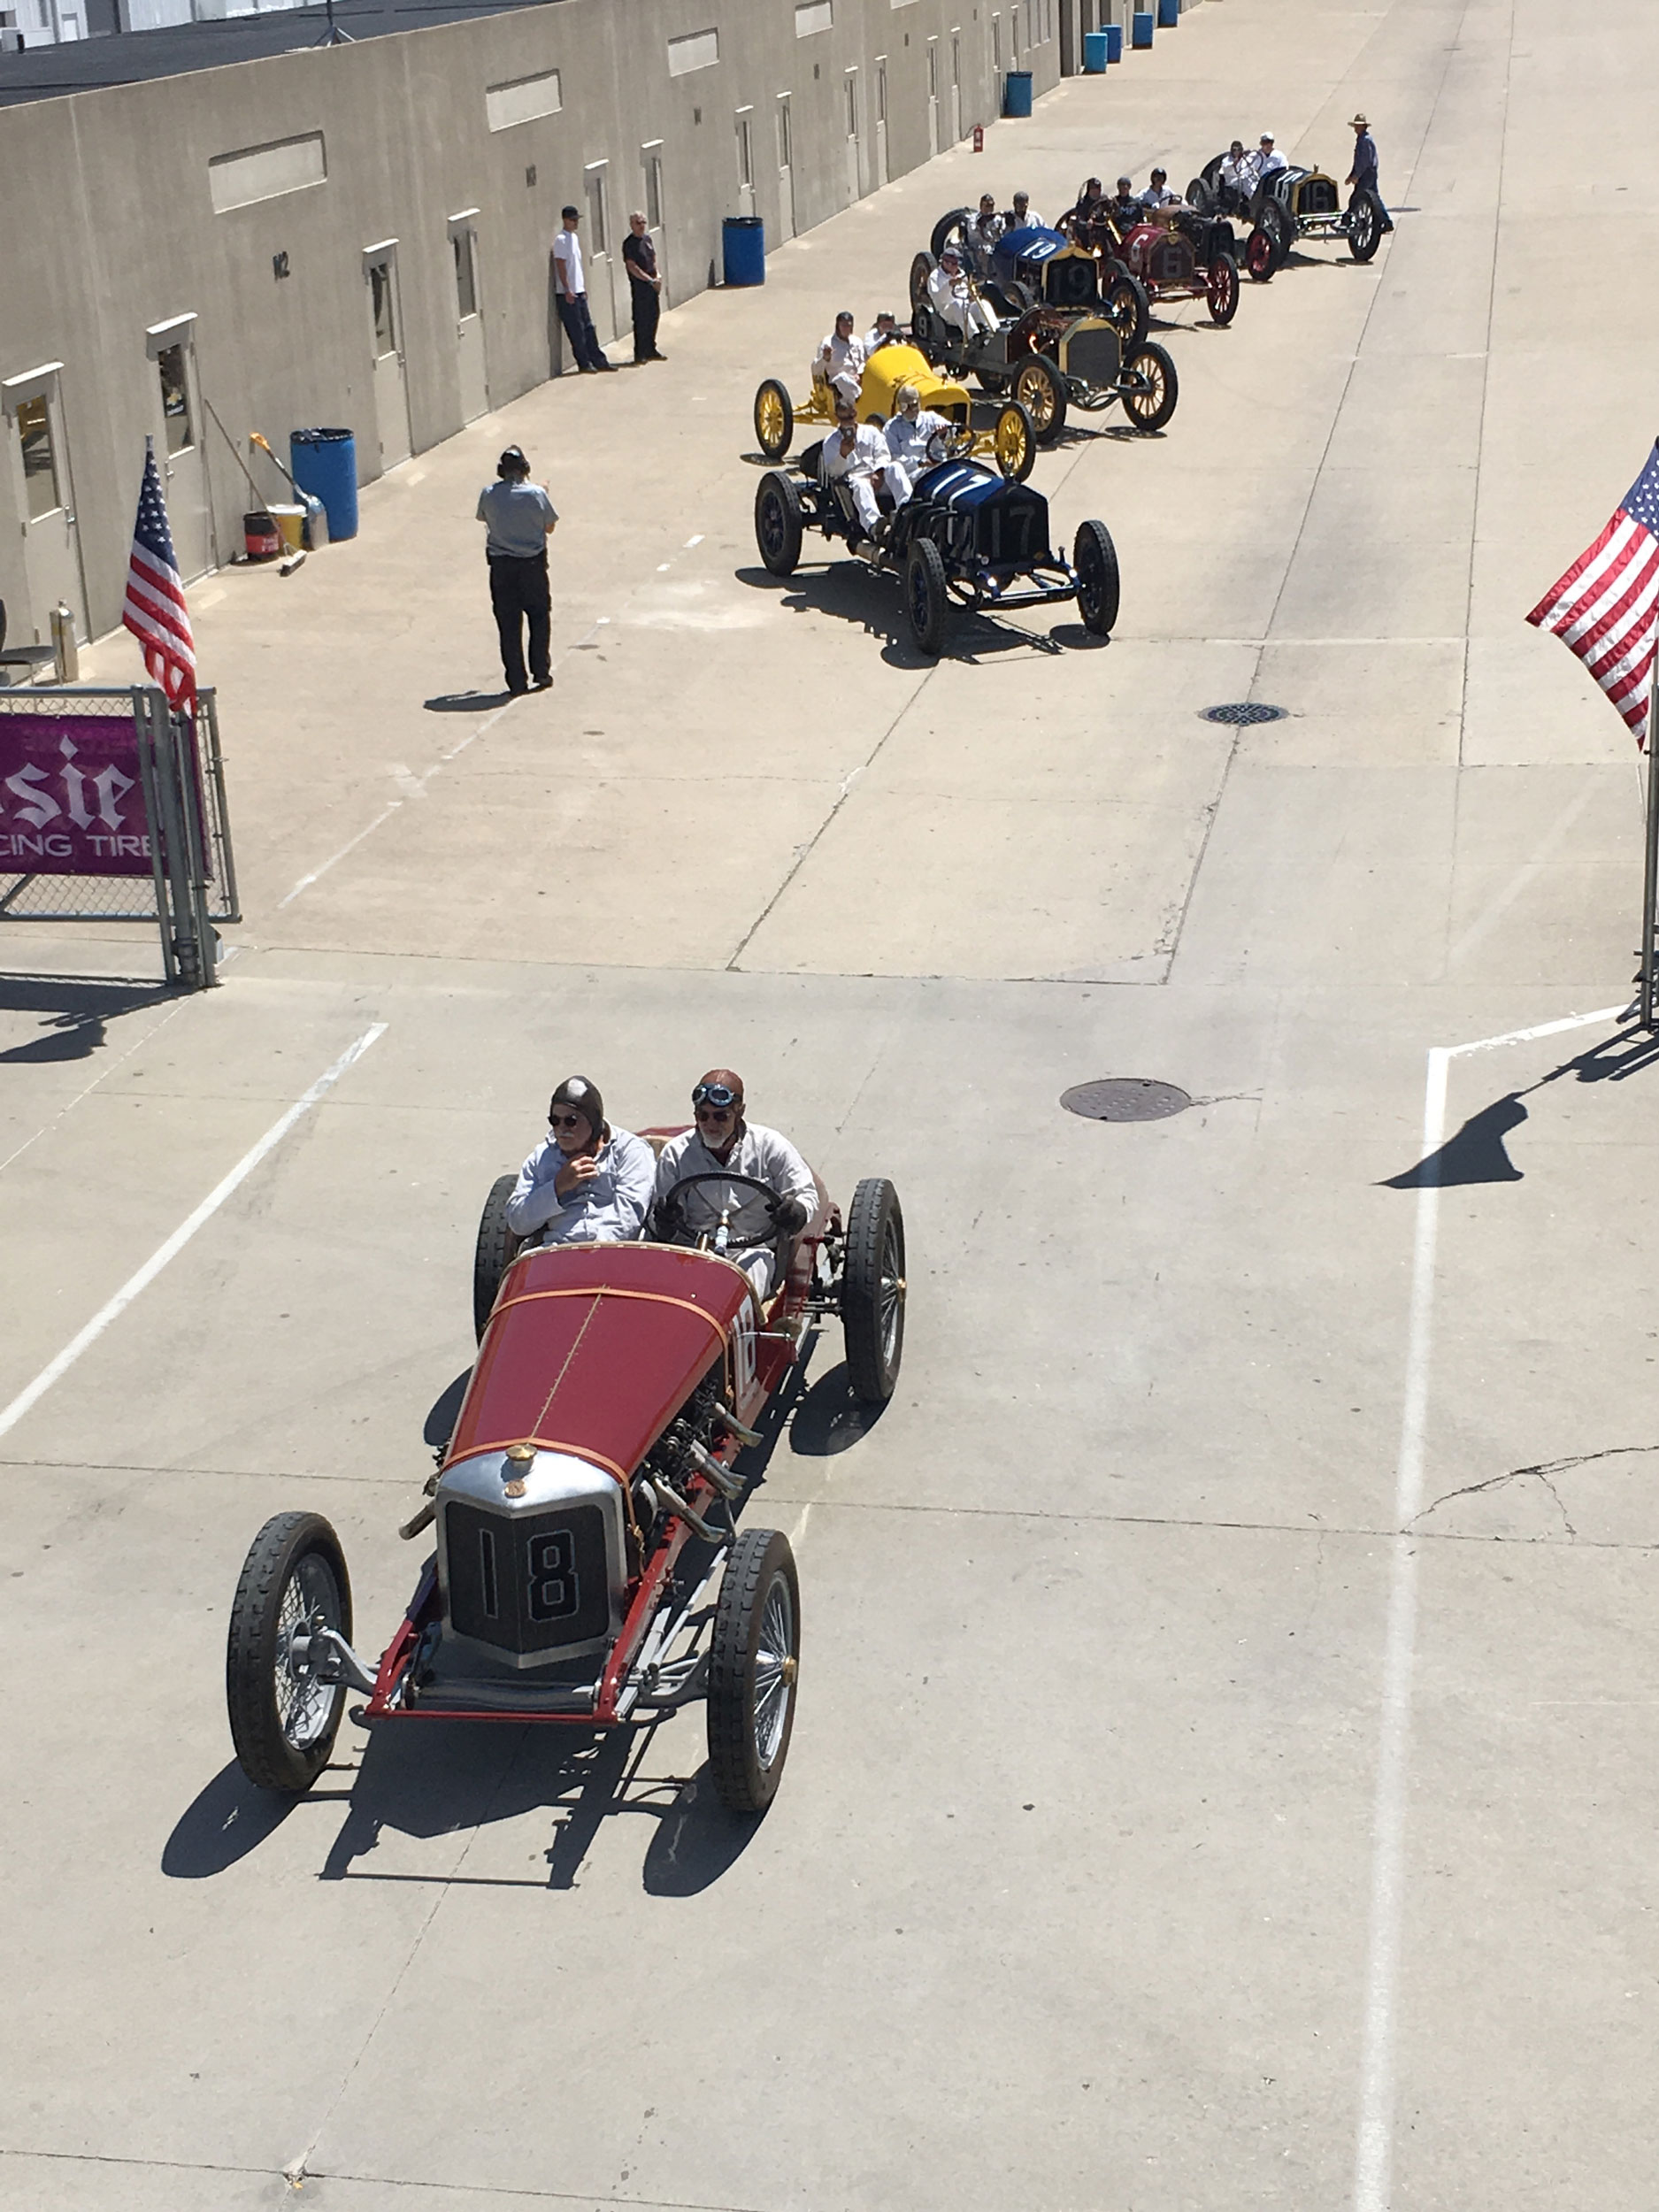 1916 Sturtevant-Auburn Romano Special in the Indy pits